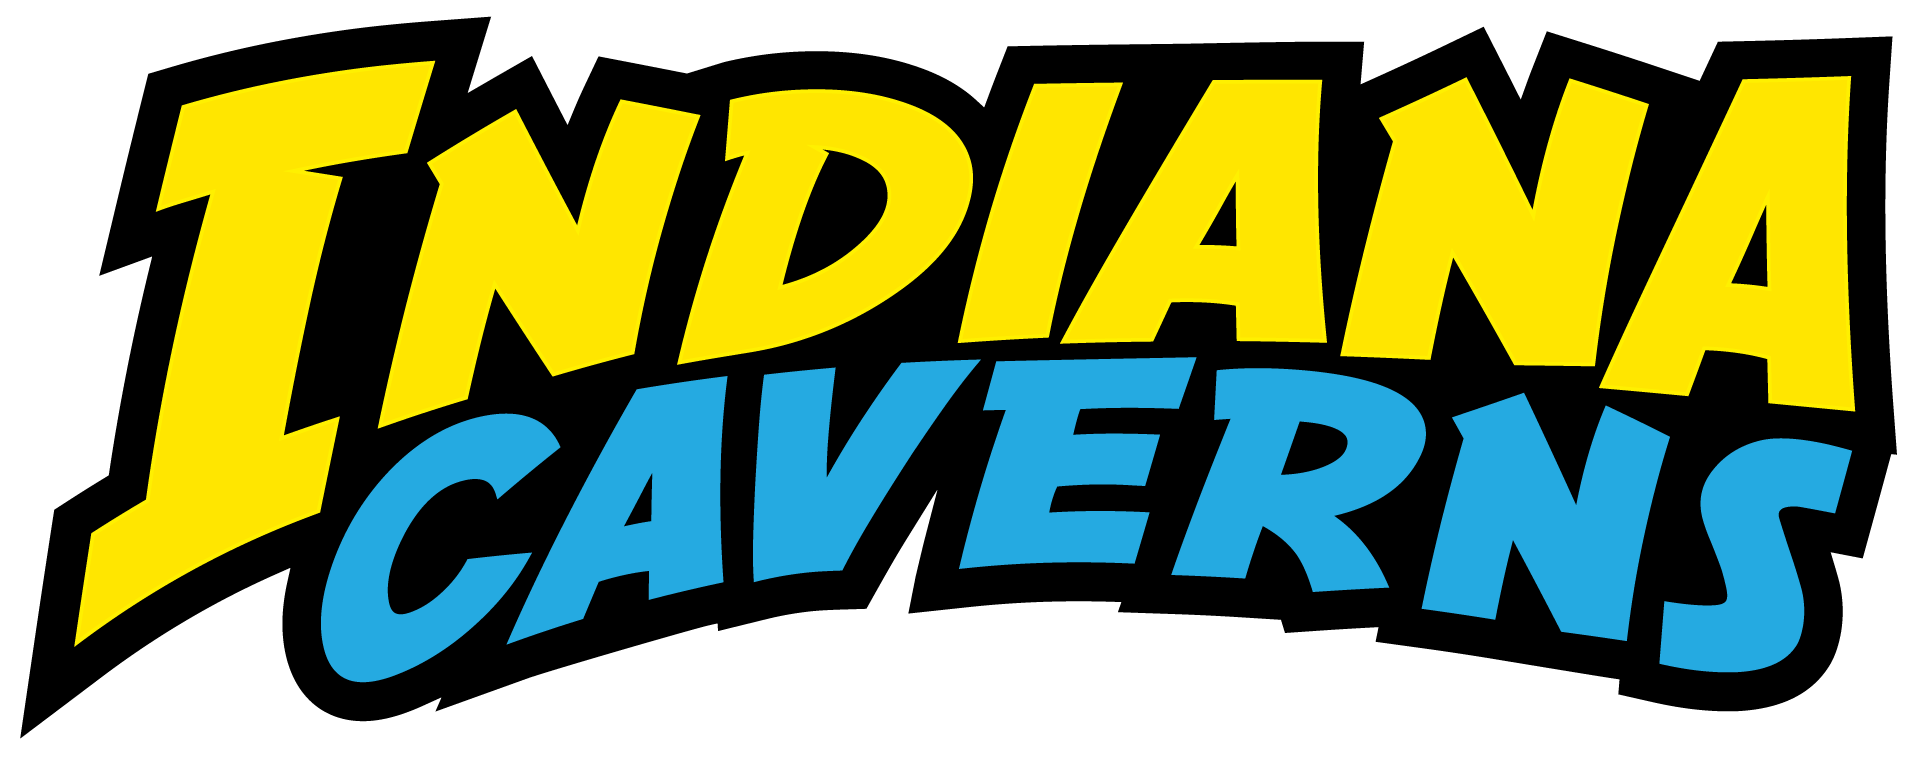 Indiana caverns s longest. Cave clipart cavern clipart black and white